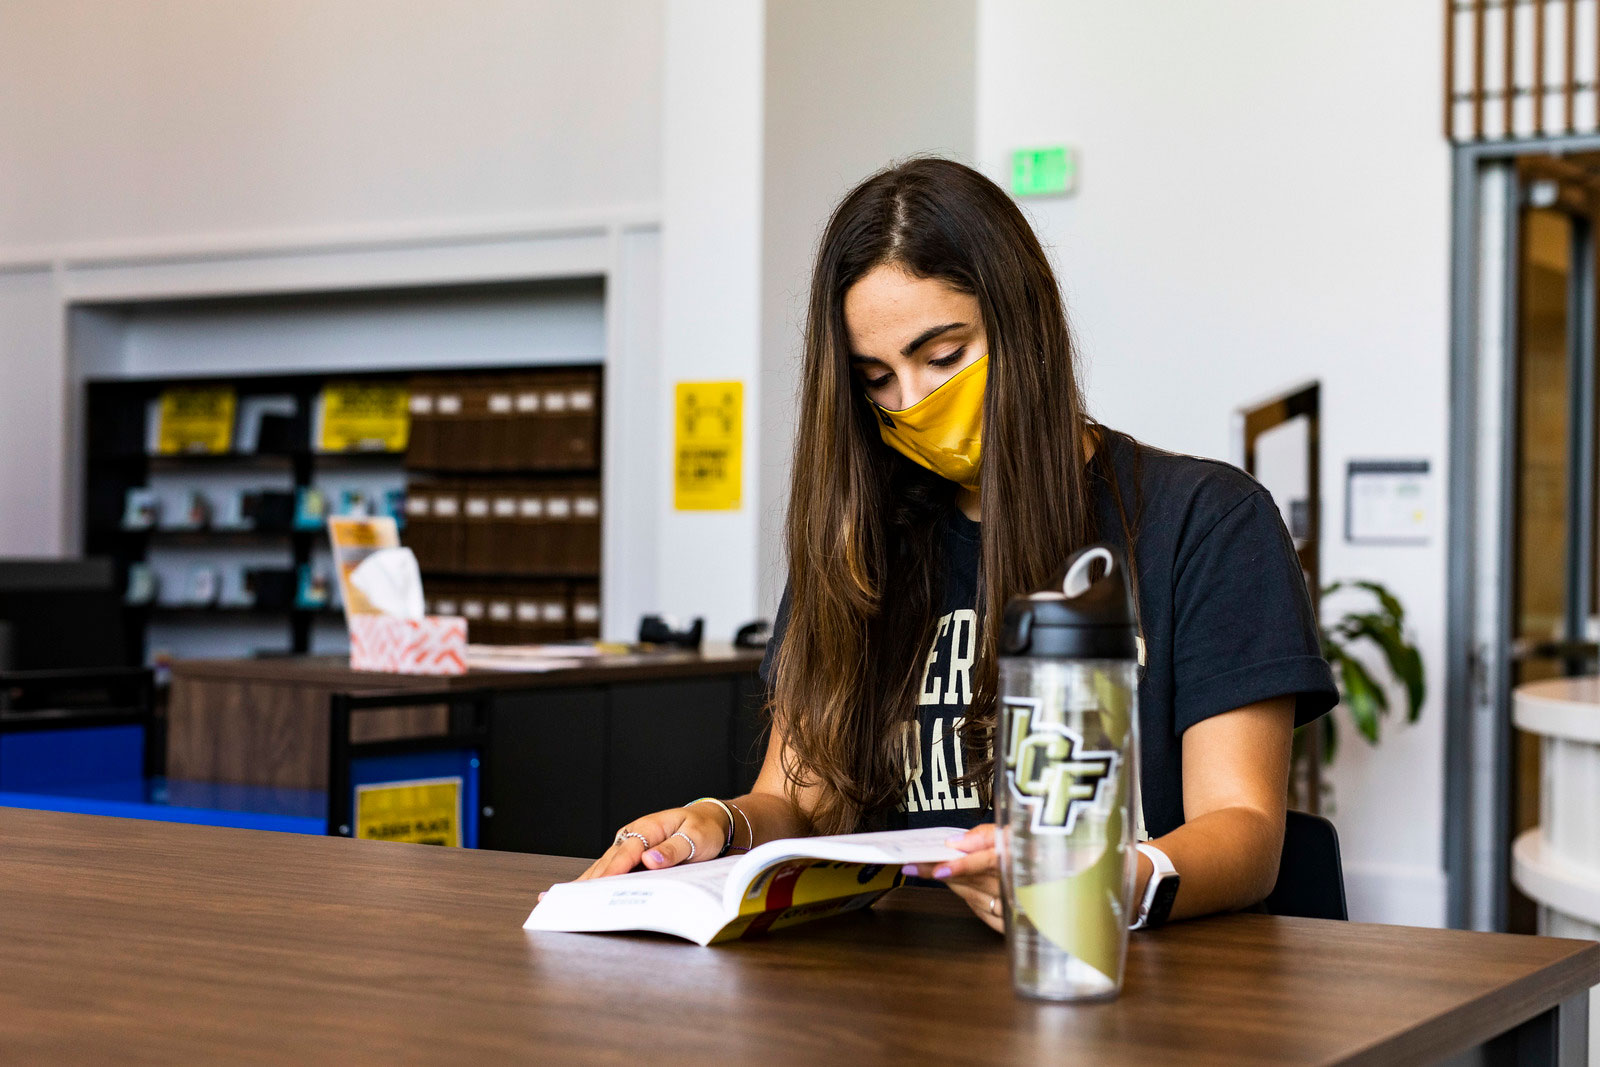 ucf downtown girl in library